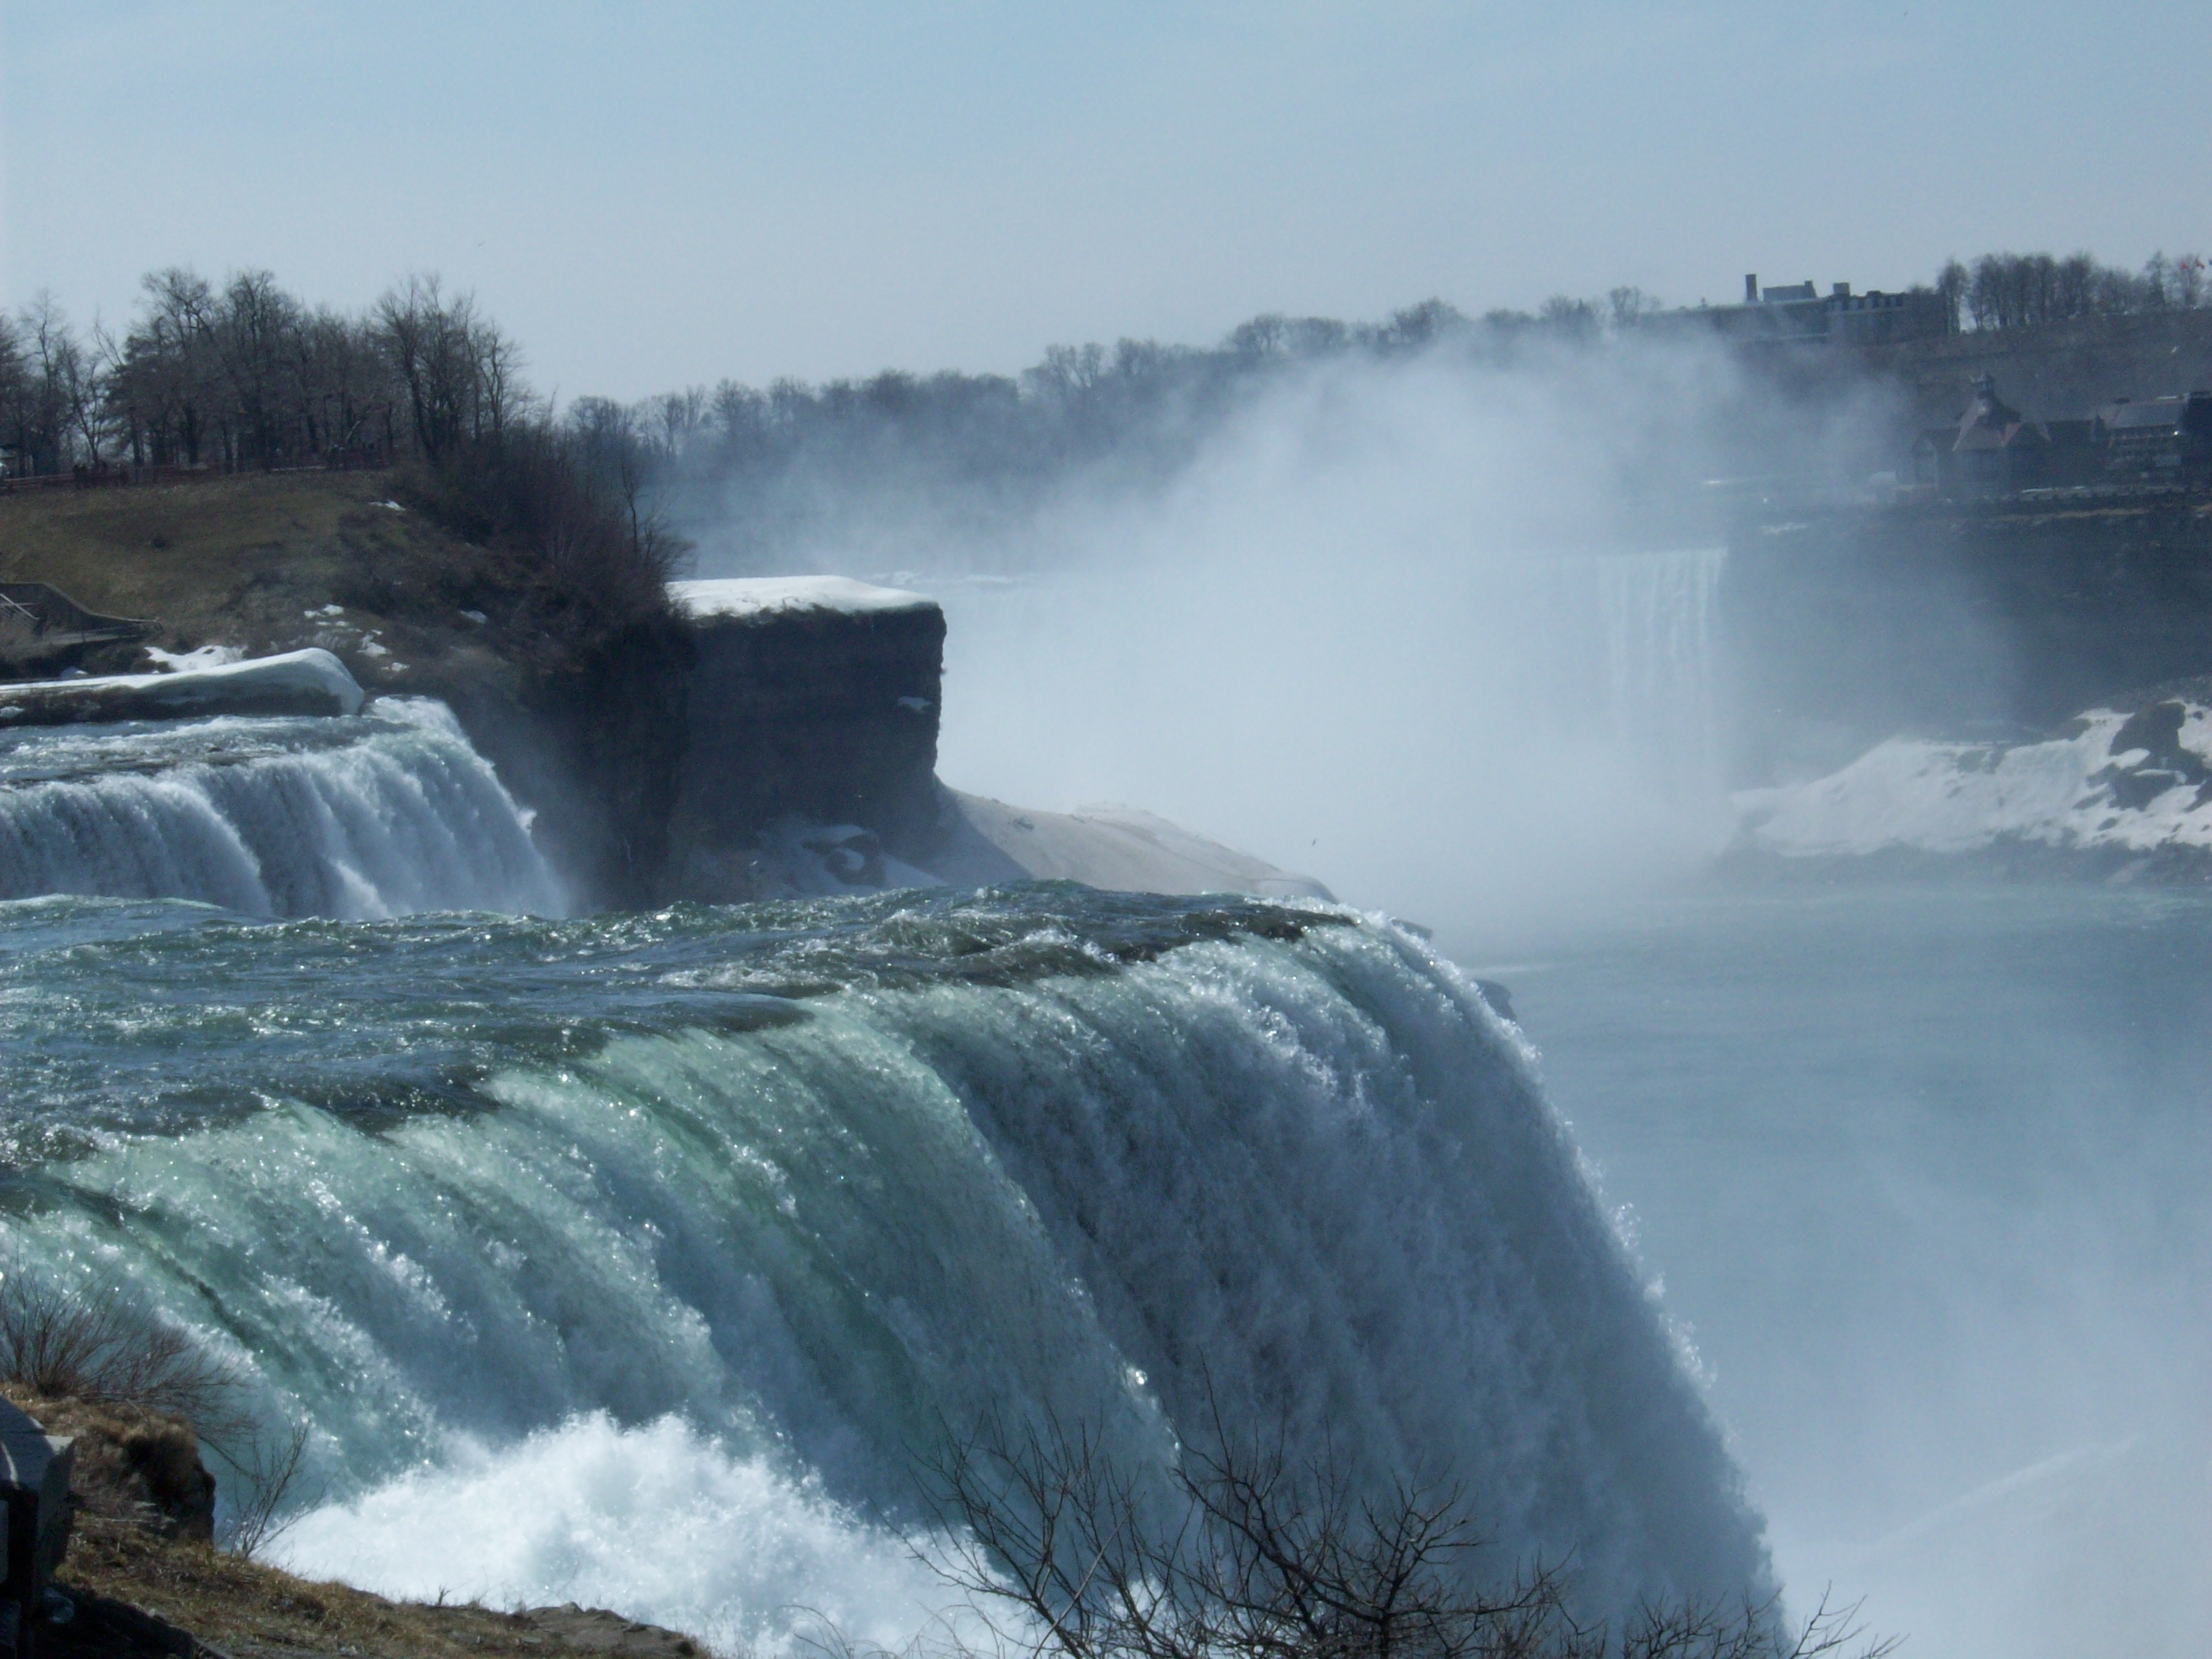 Rock City Niagara Falls and Western New York, Niagara Falls State Park – a Pictorial Journey | The Daily Voice